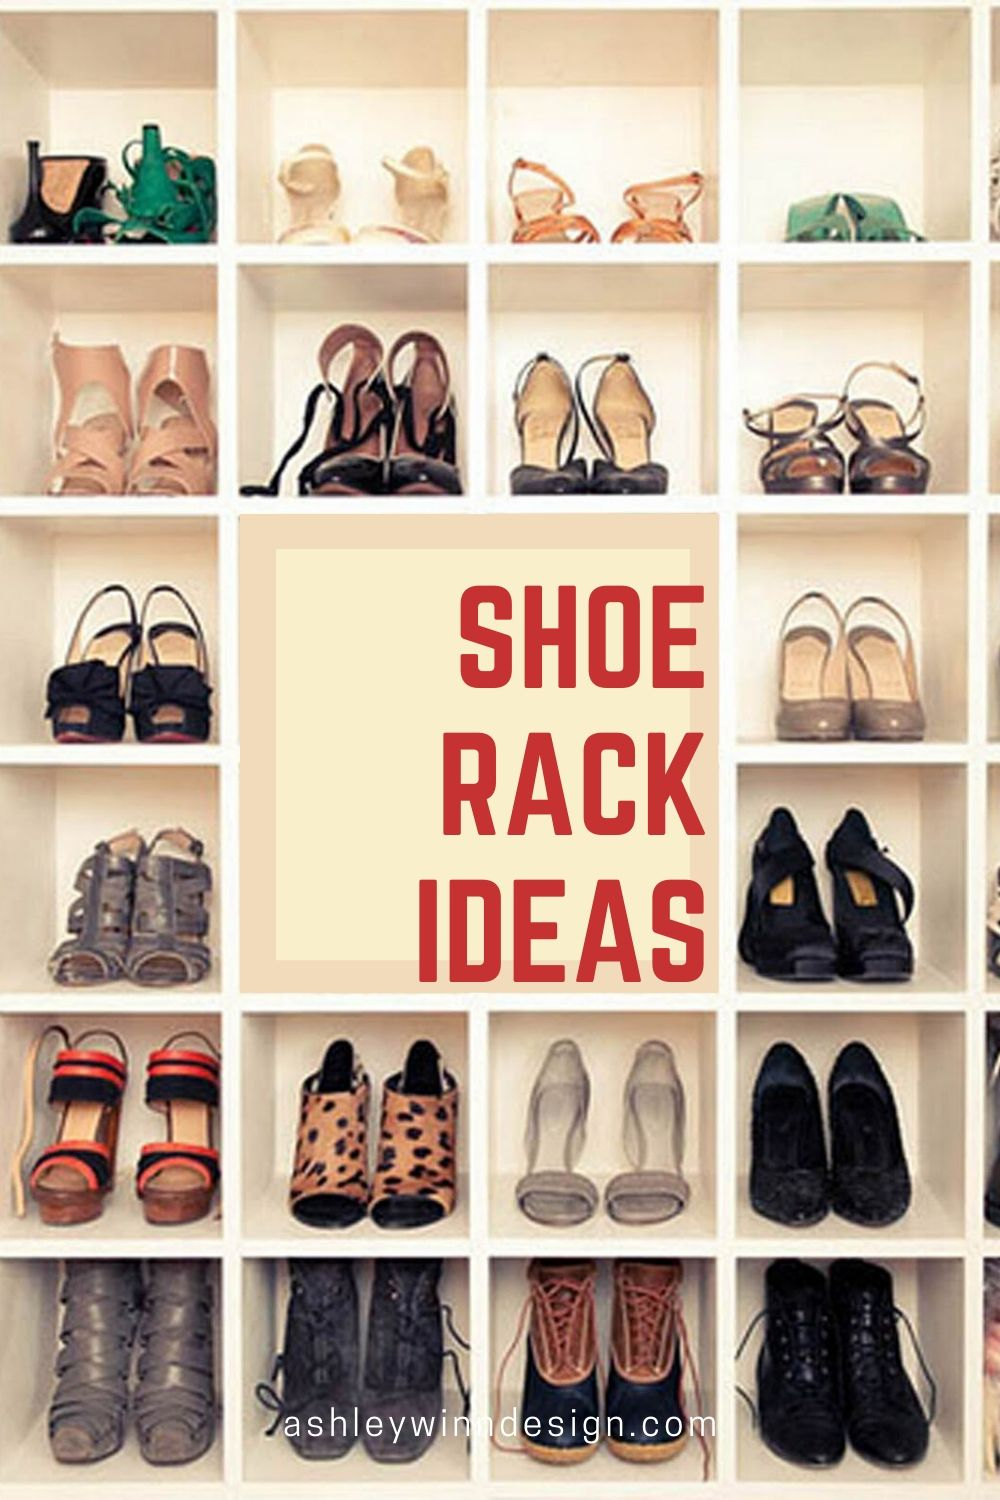 47 Awesome Shoe Rack Ideas in 2020